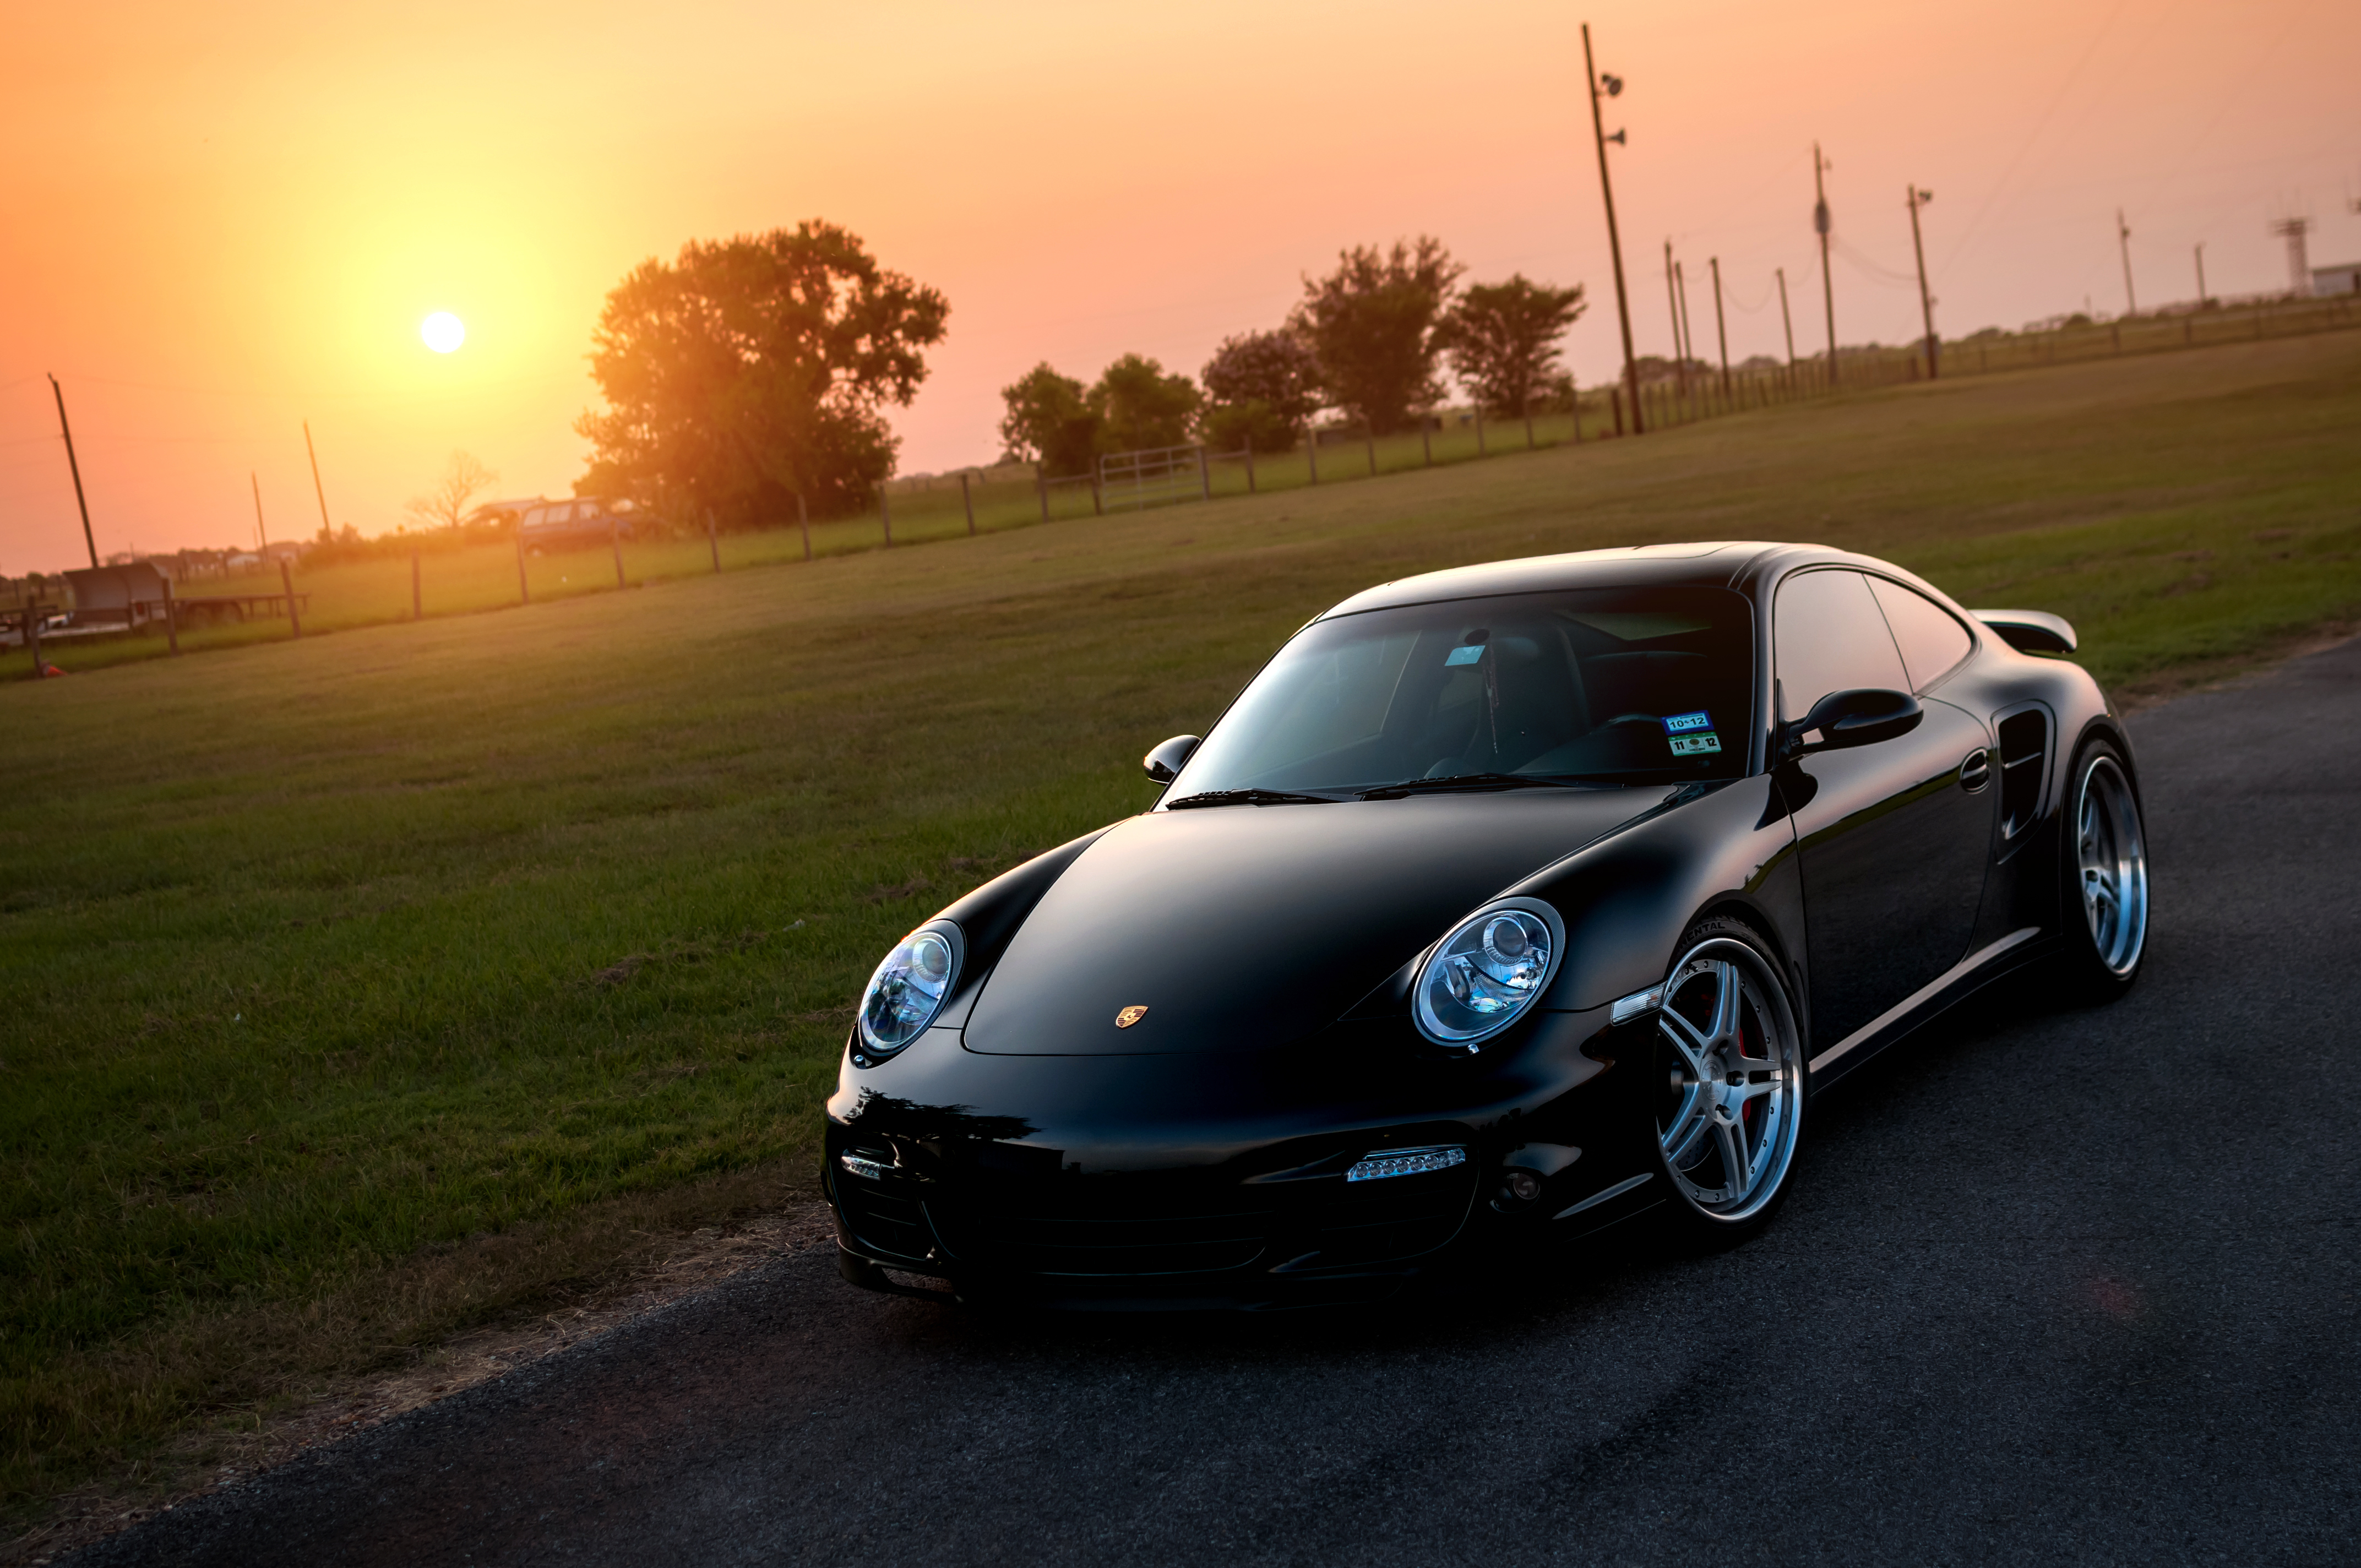 102207 download wallpaper Porsche, Sun, Cars, Glare, Lawn, 911, 997, Front, Turbo screensavers and pictures for free